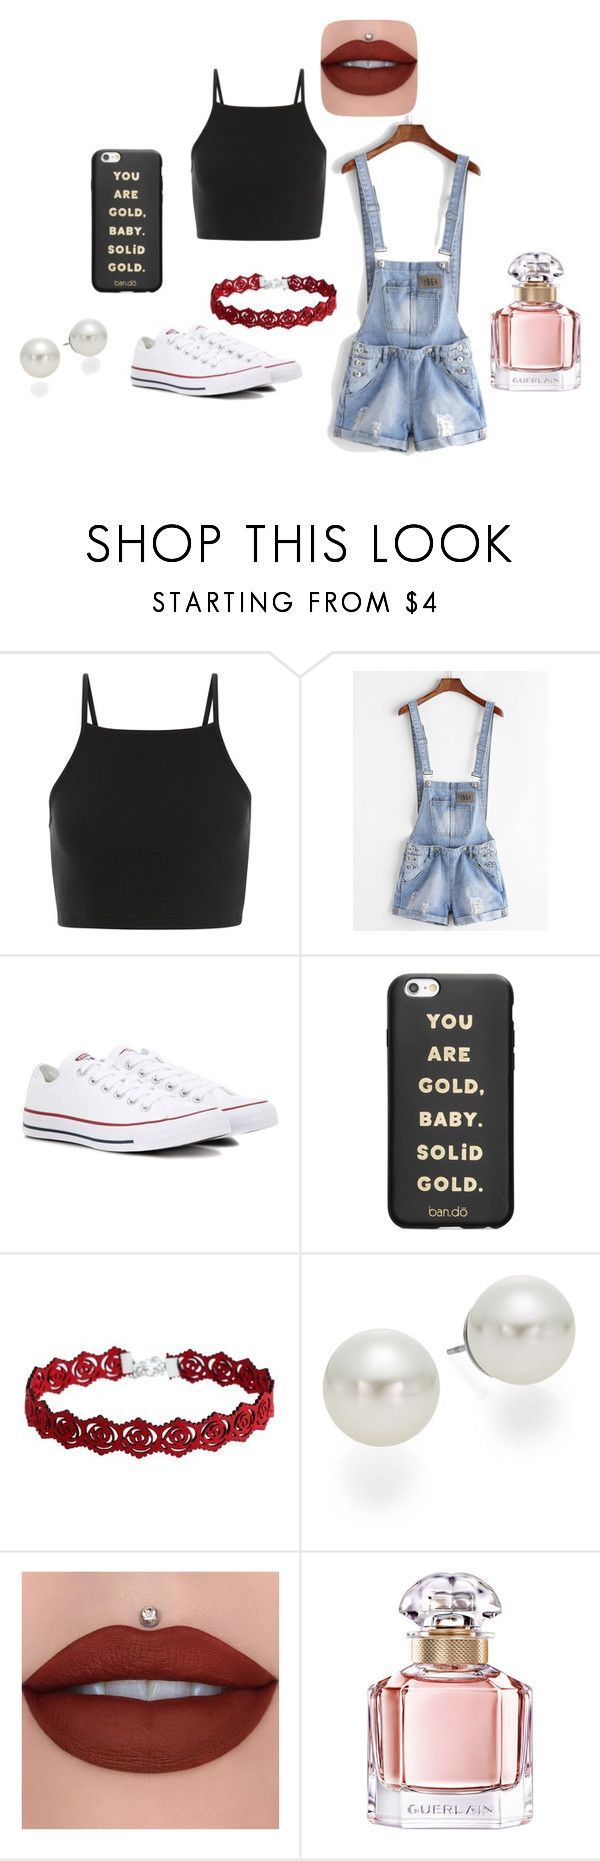 """Movie date with Carter Reynolds"" by ingridhauf on Polyvore featuring WithChic, Converse, ban.do, AK Anne Klein and Guerlain"